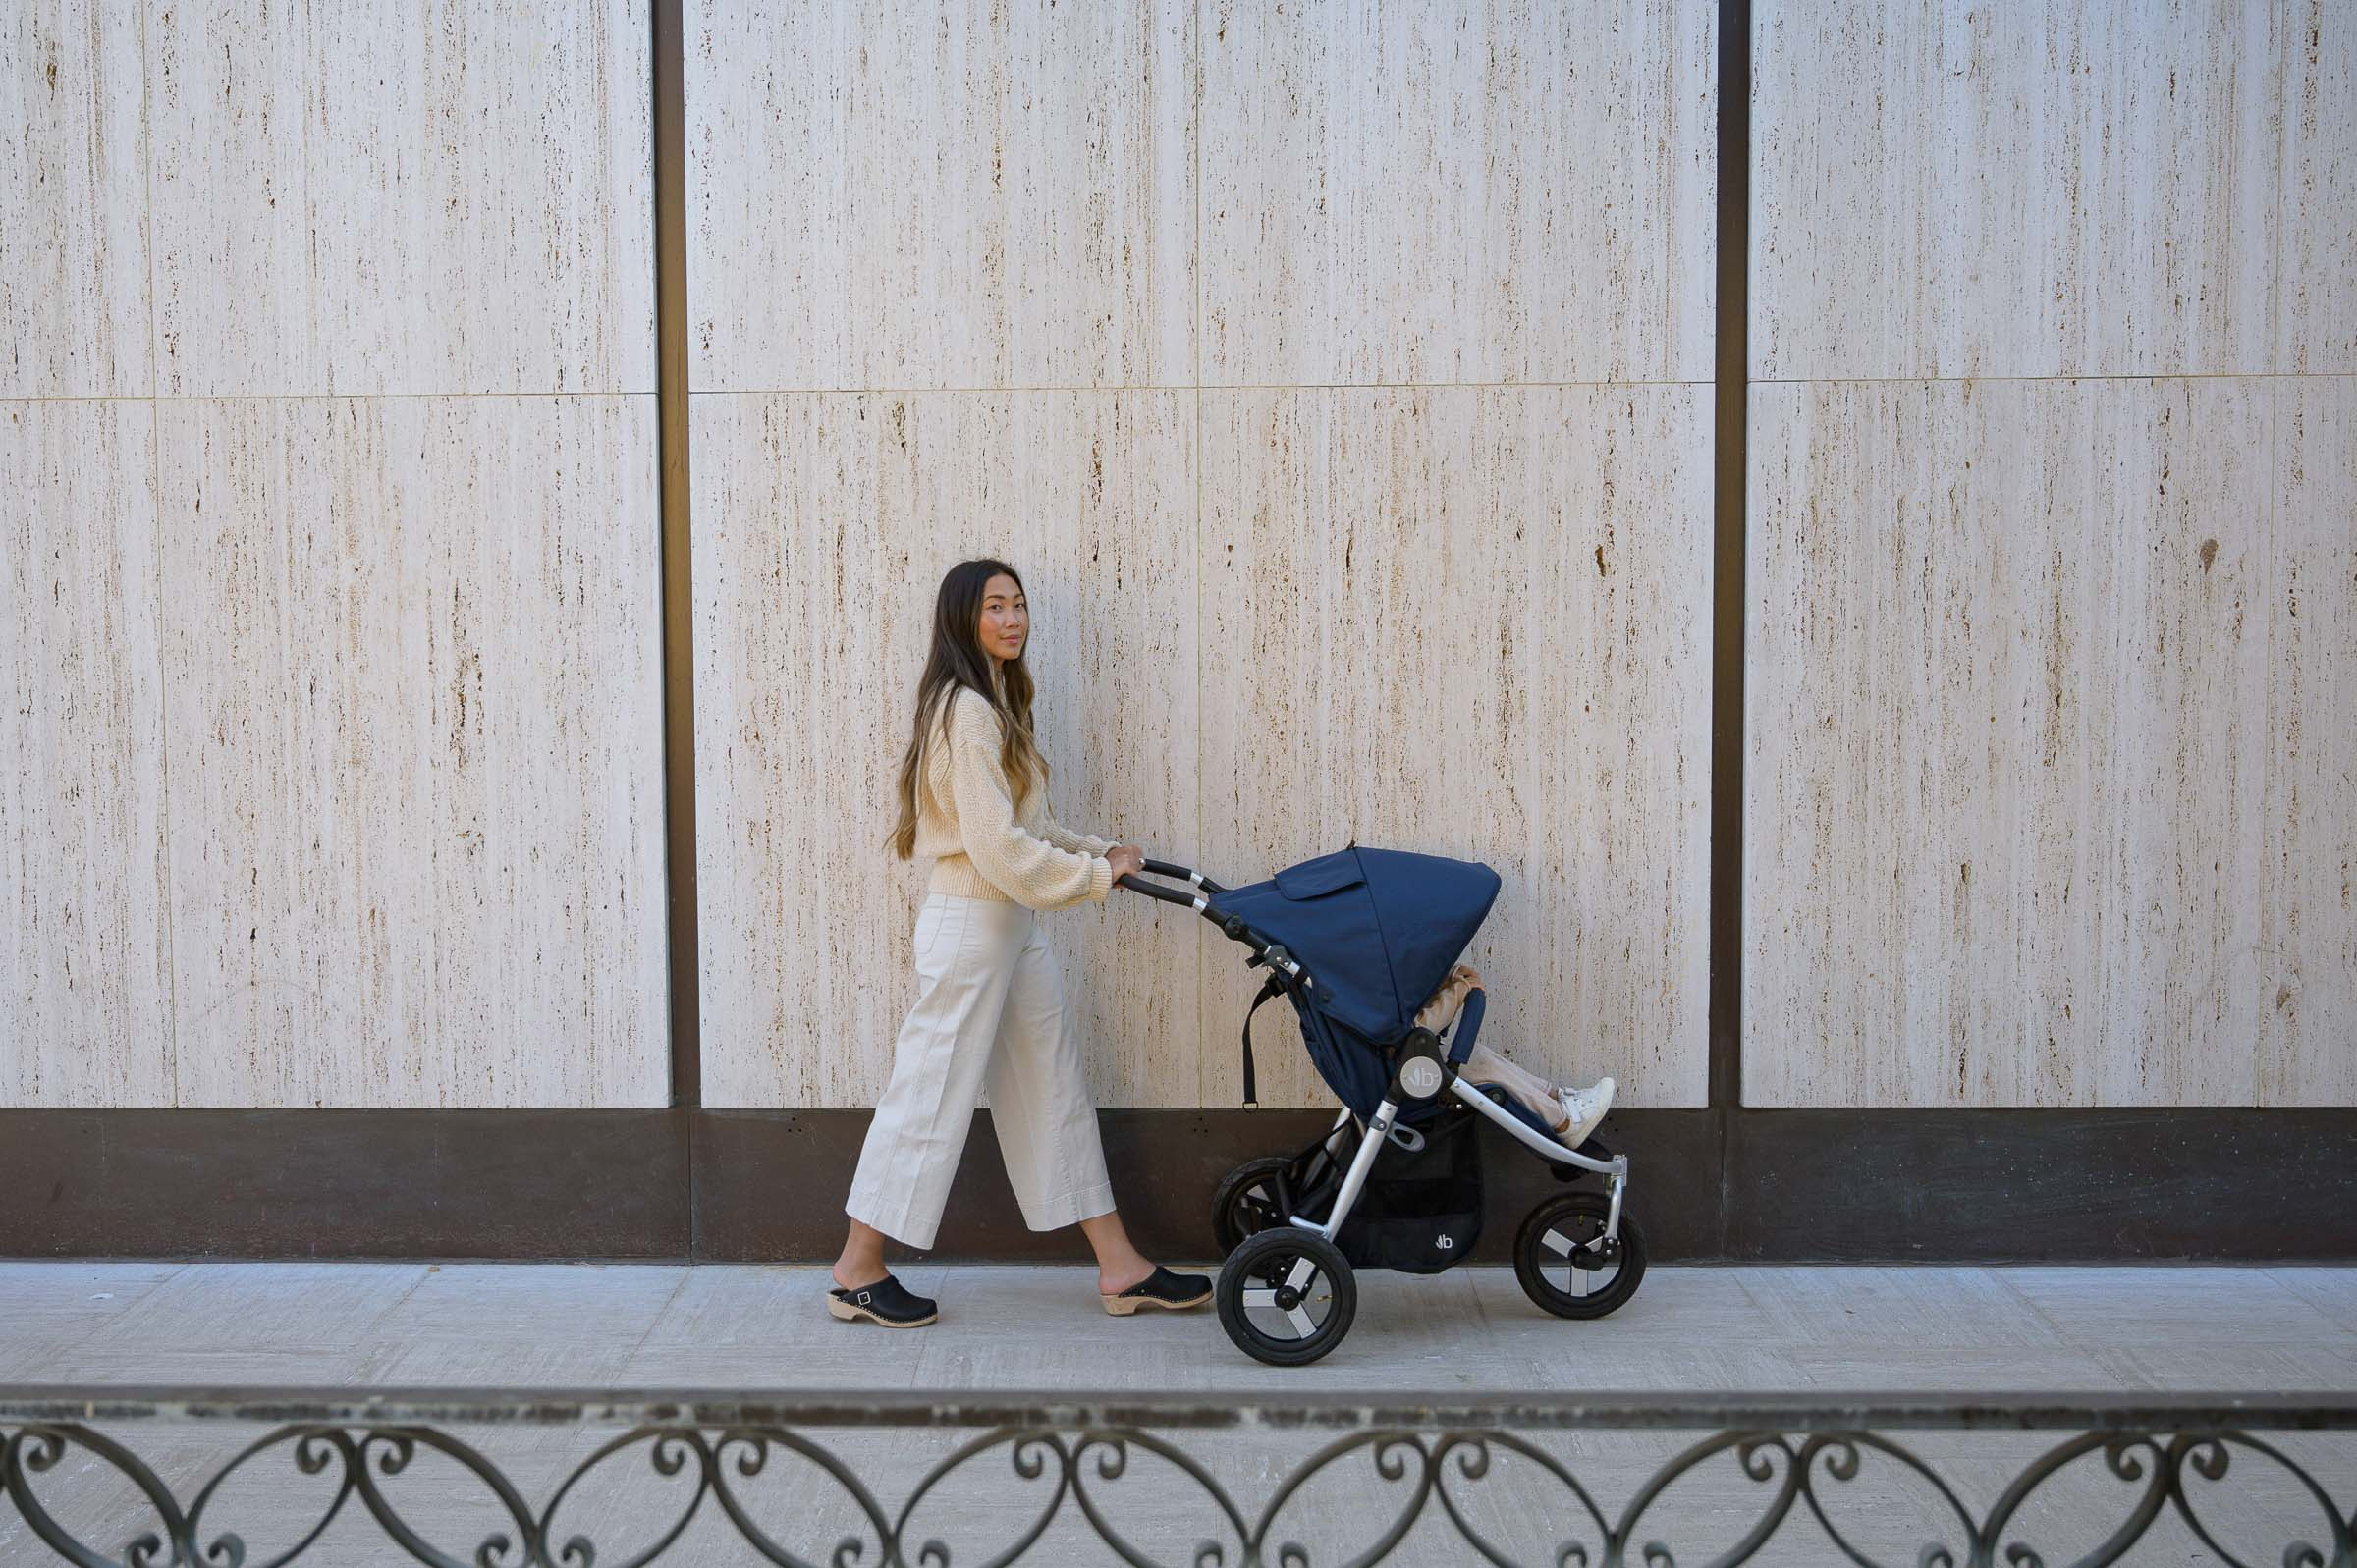 Photo of mother pushing child in Indie in Maritime Blue with white wall in background and cement terrain